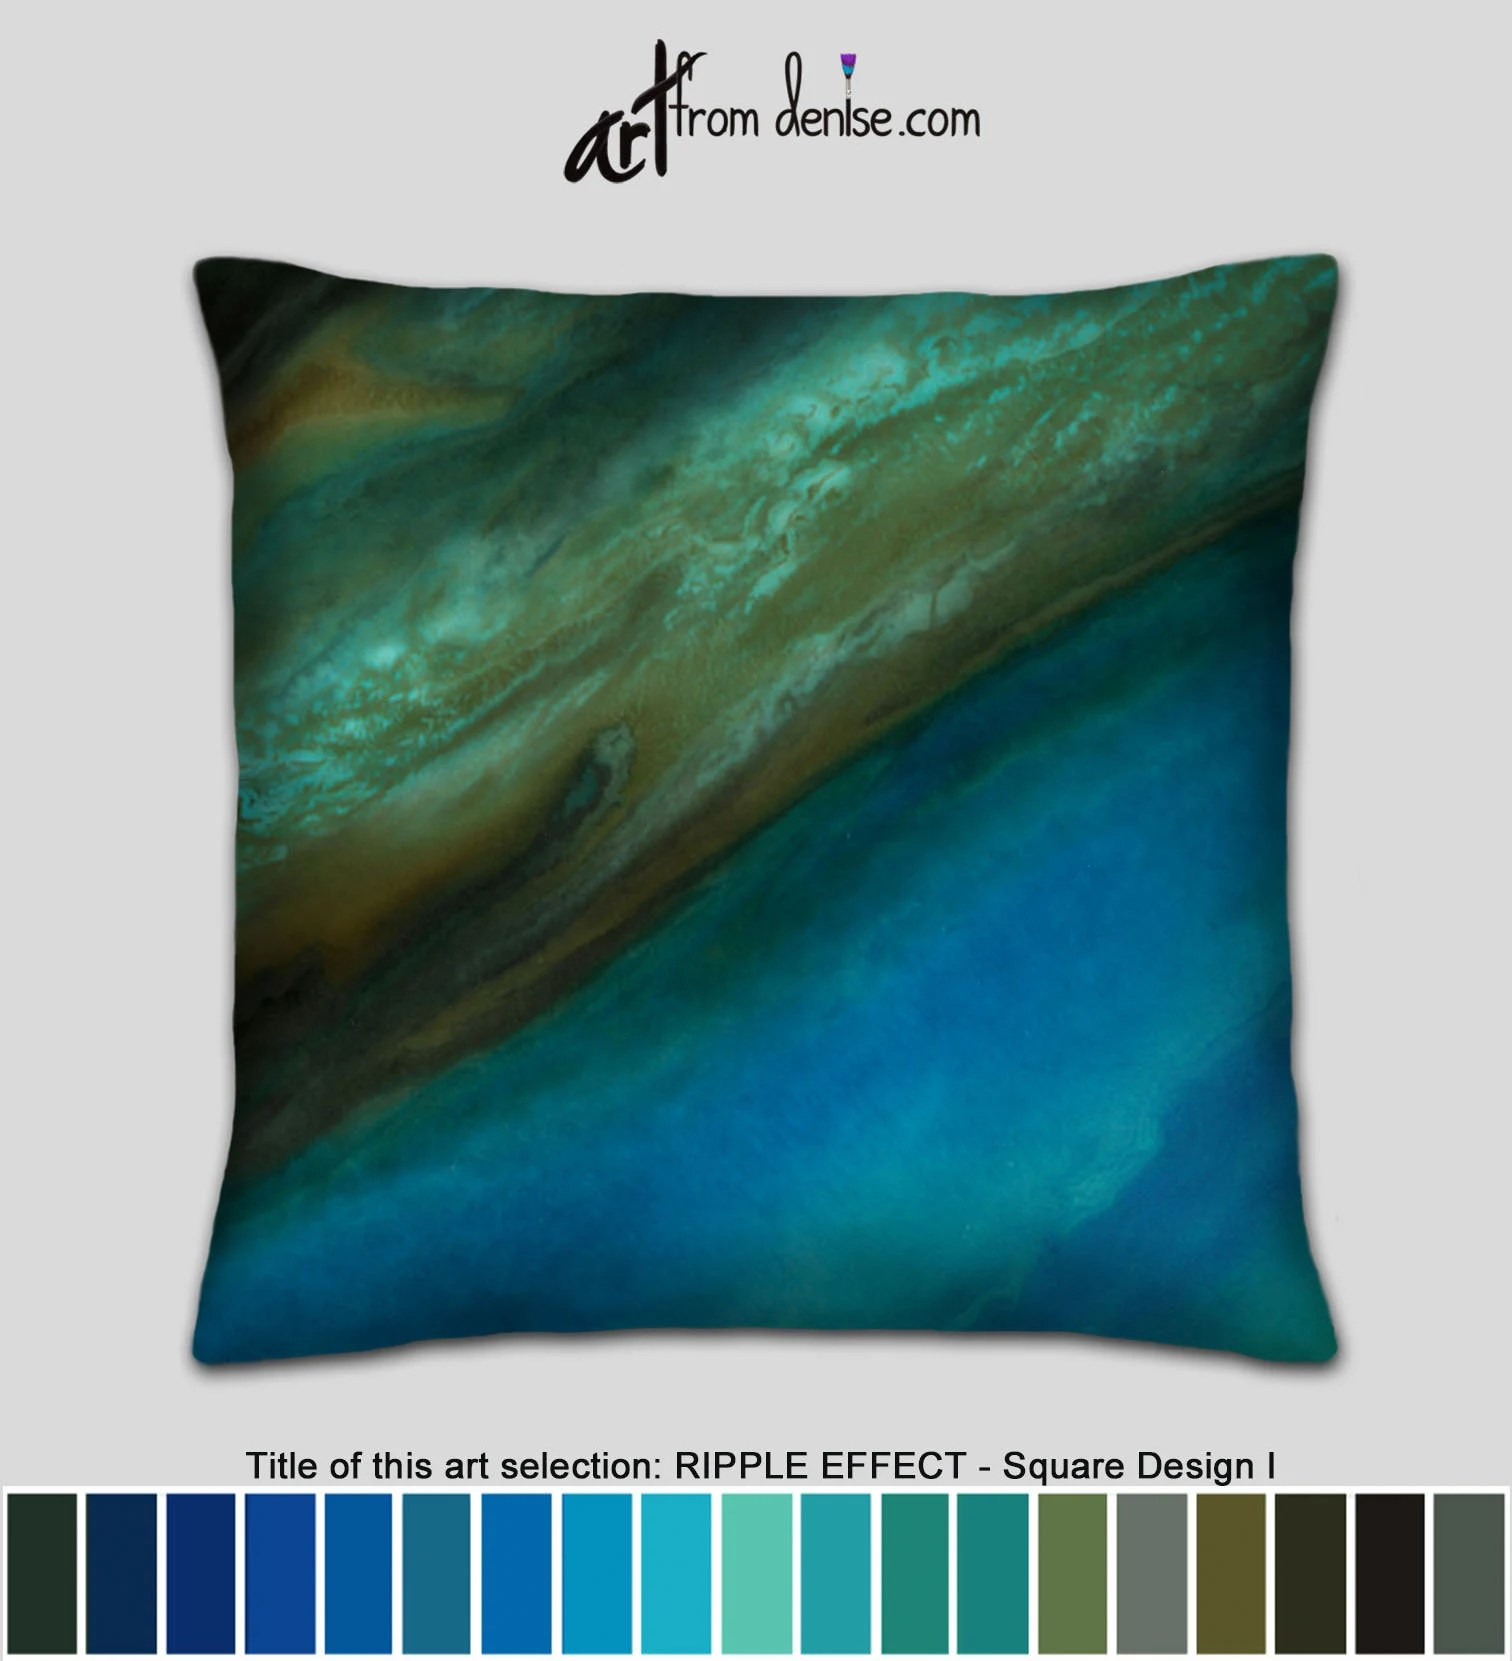 Big Couch Throw Gold Brown And Blue Throw Pillows For Bed Decor Big Couch Pillows Set Or Decorative Pillows For Outside